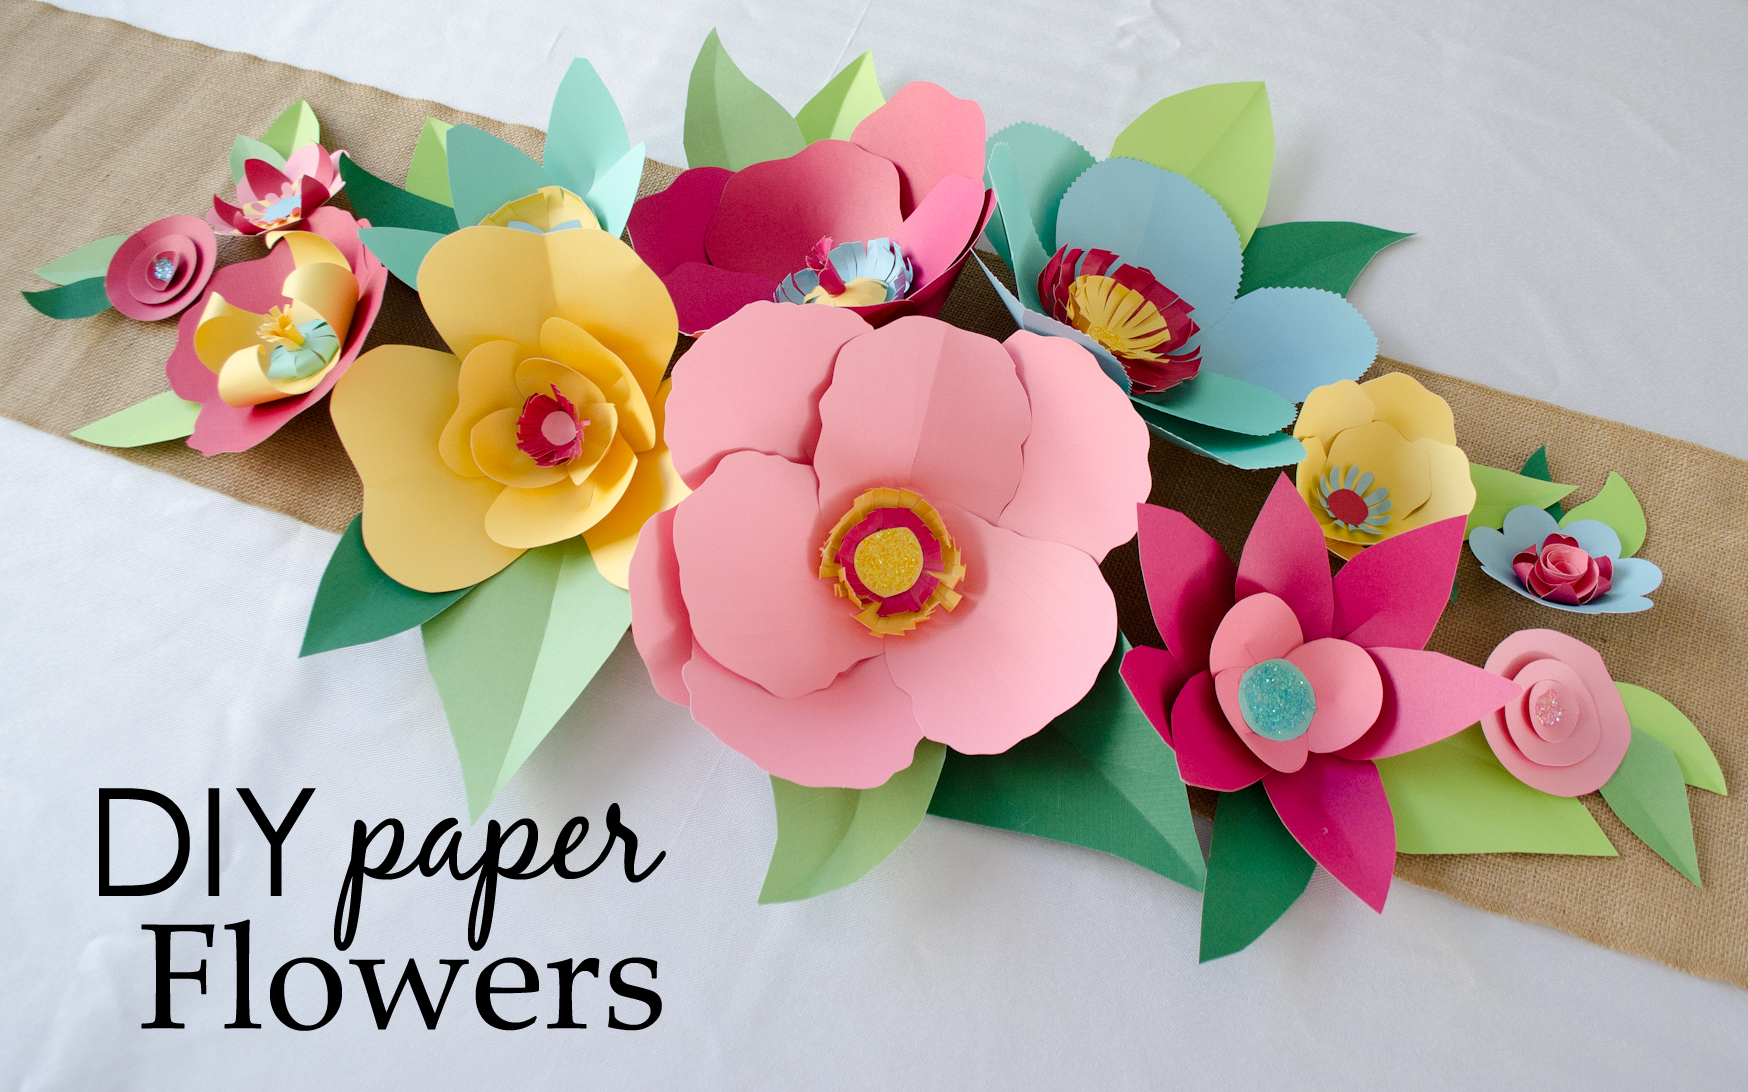 Diy hand cut paper flowers project nursery diy paper flowers izmirmasajfo